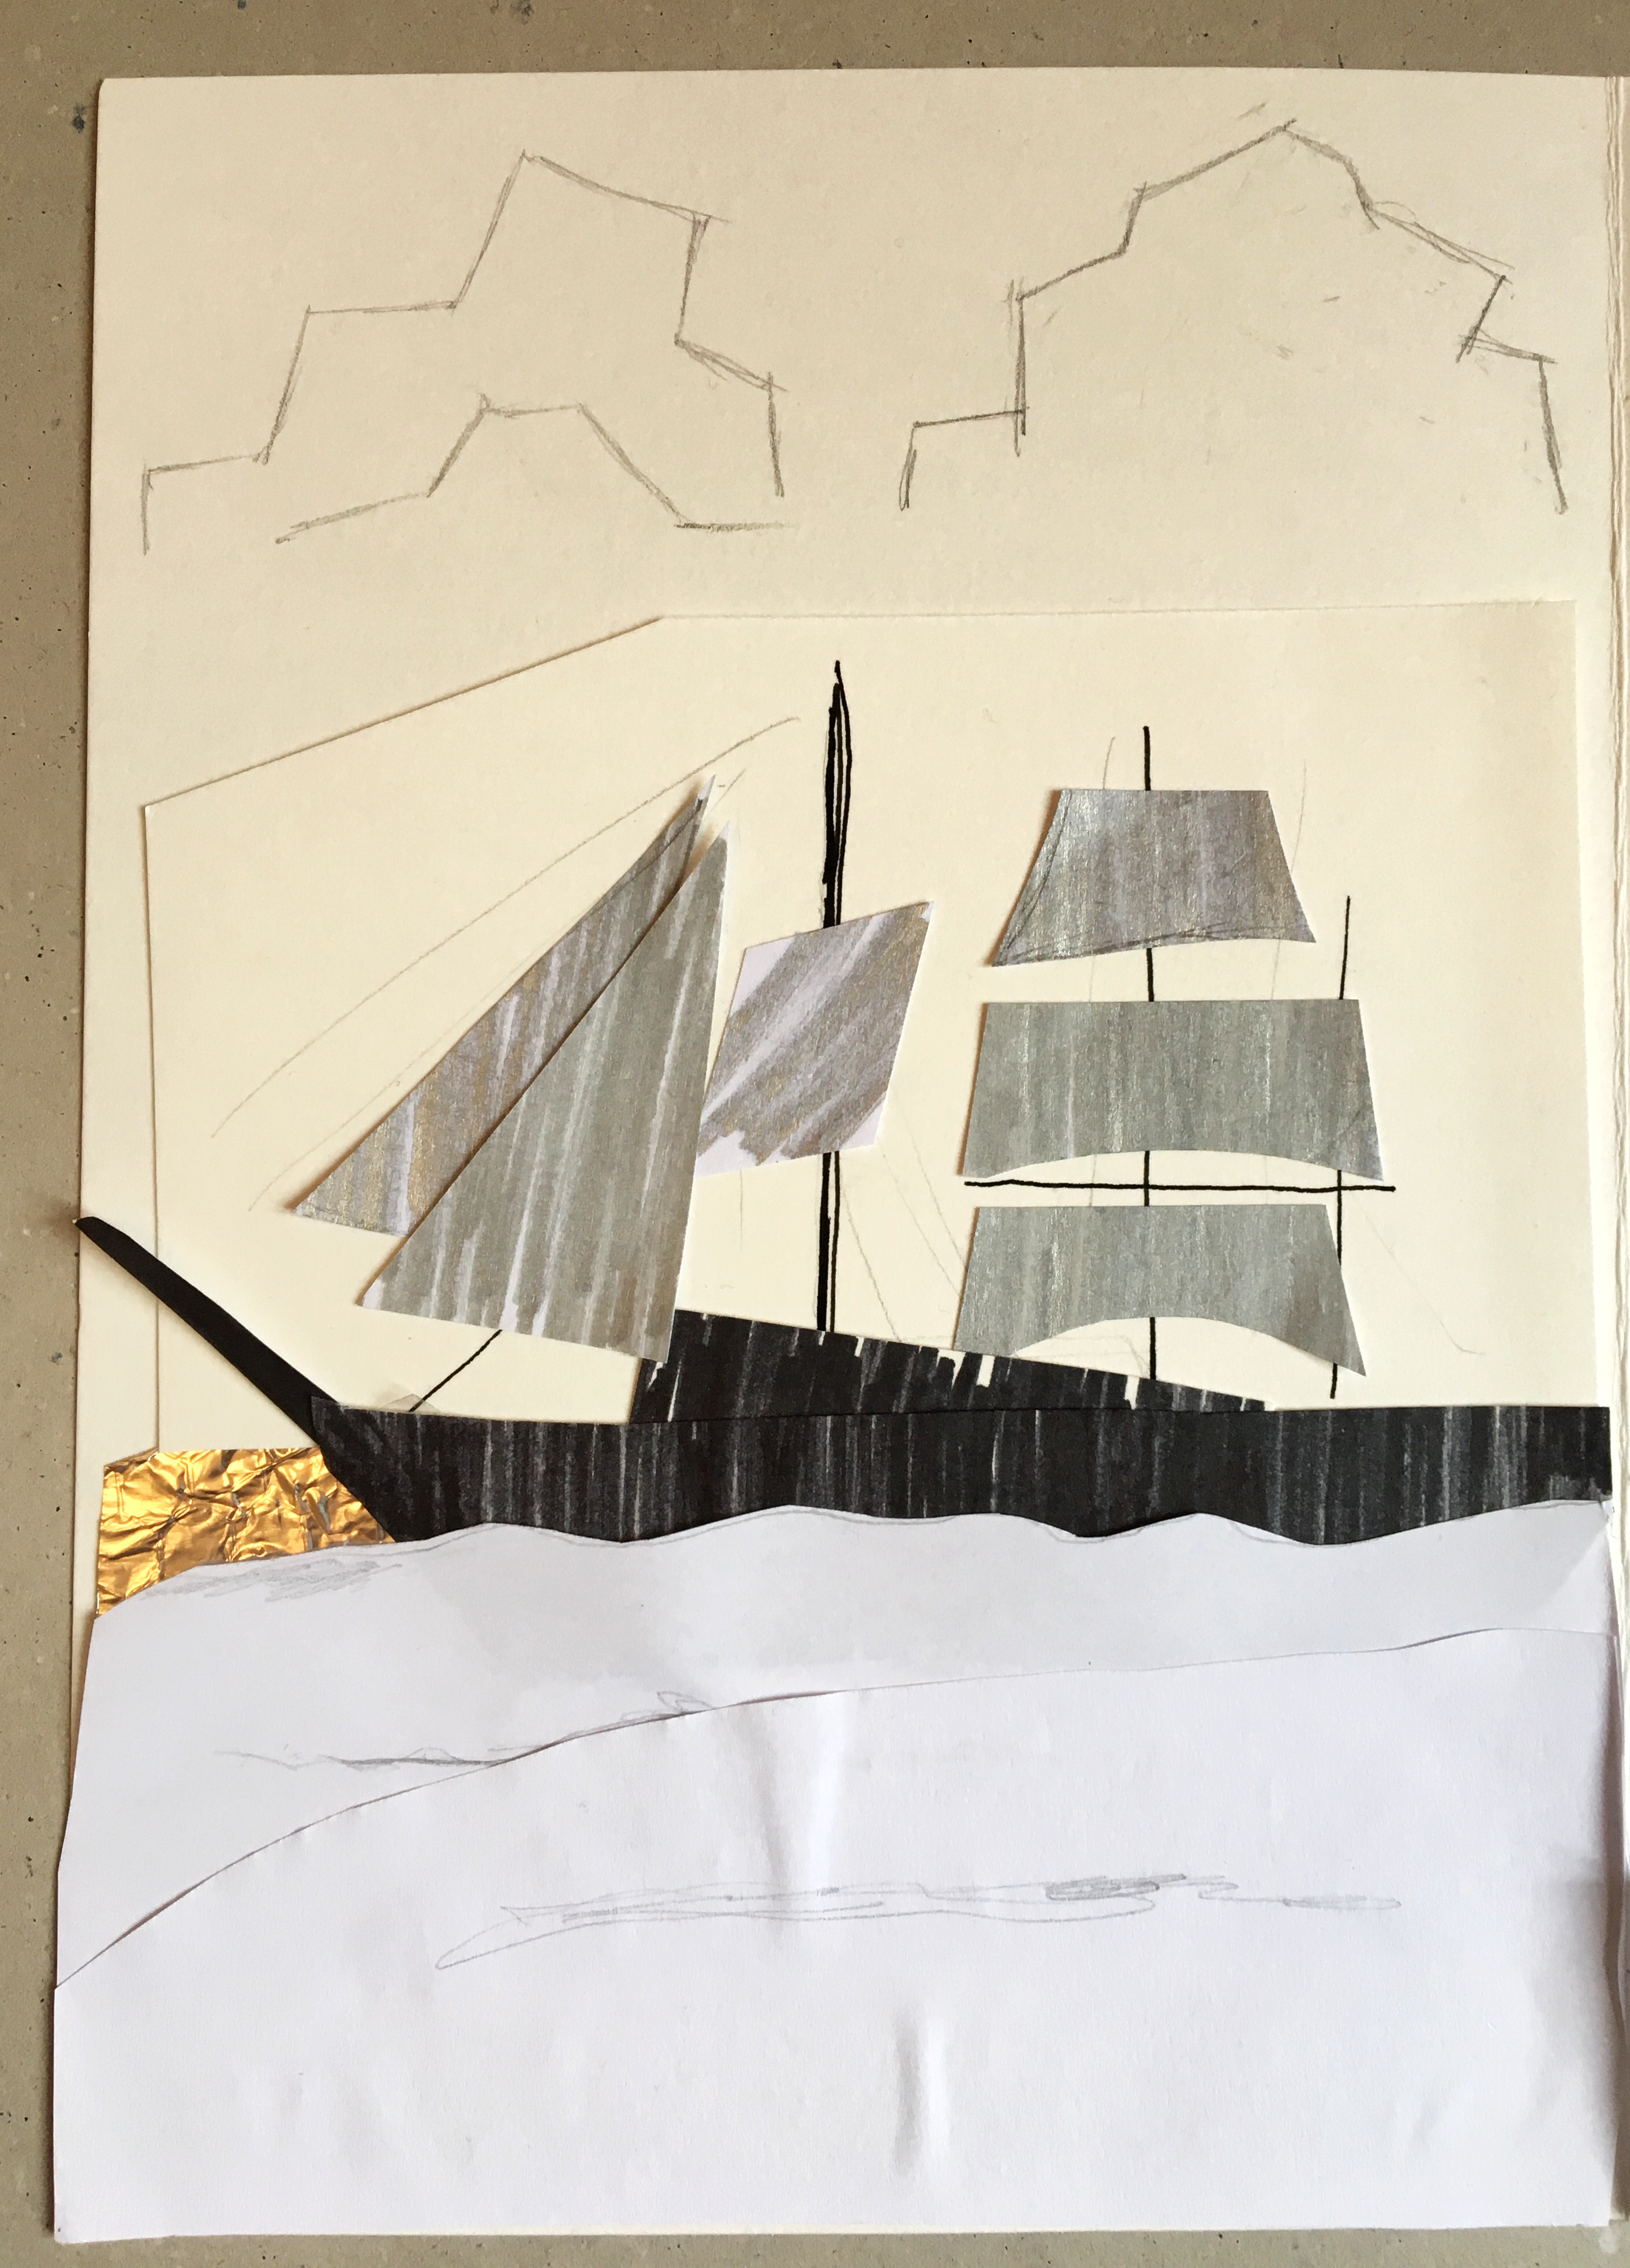 A boat created using collage. The base of the ship has been coloured black and tin foil has been used to create the sails.